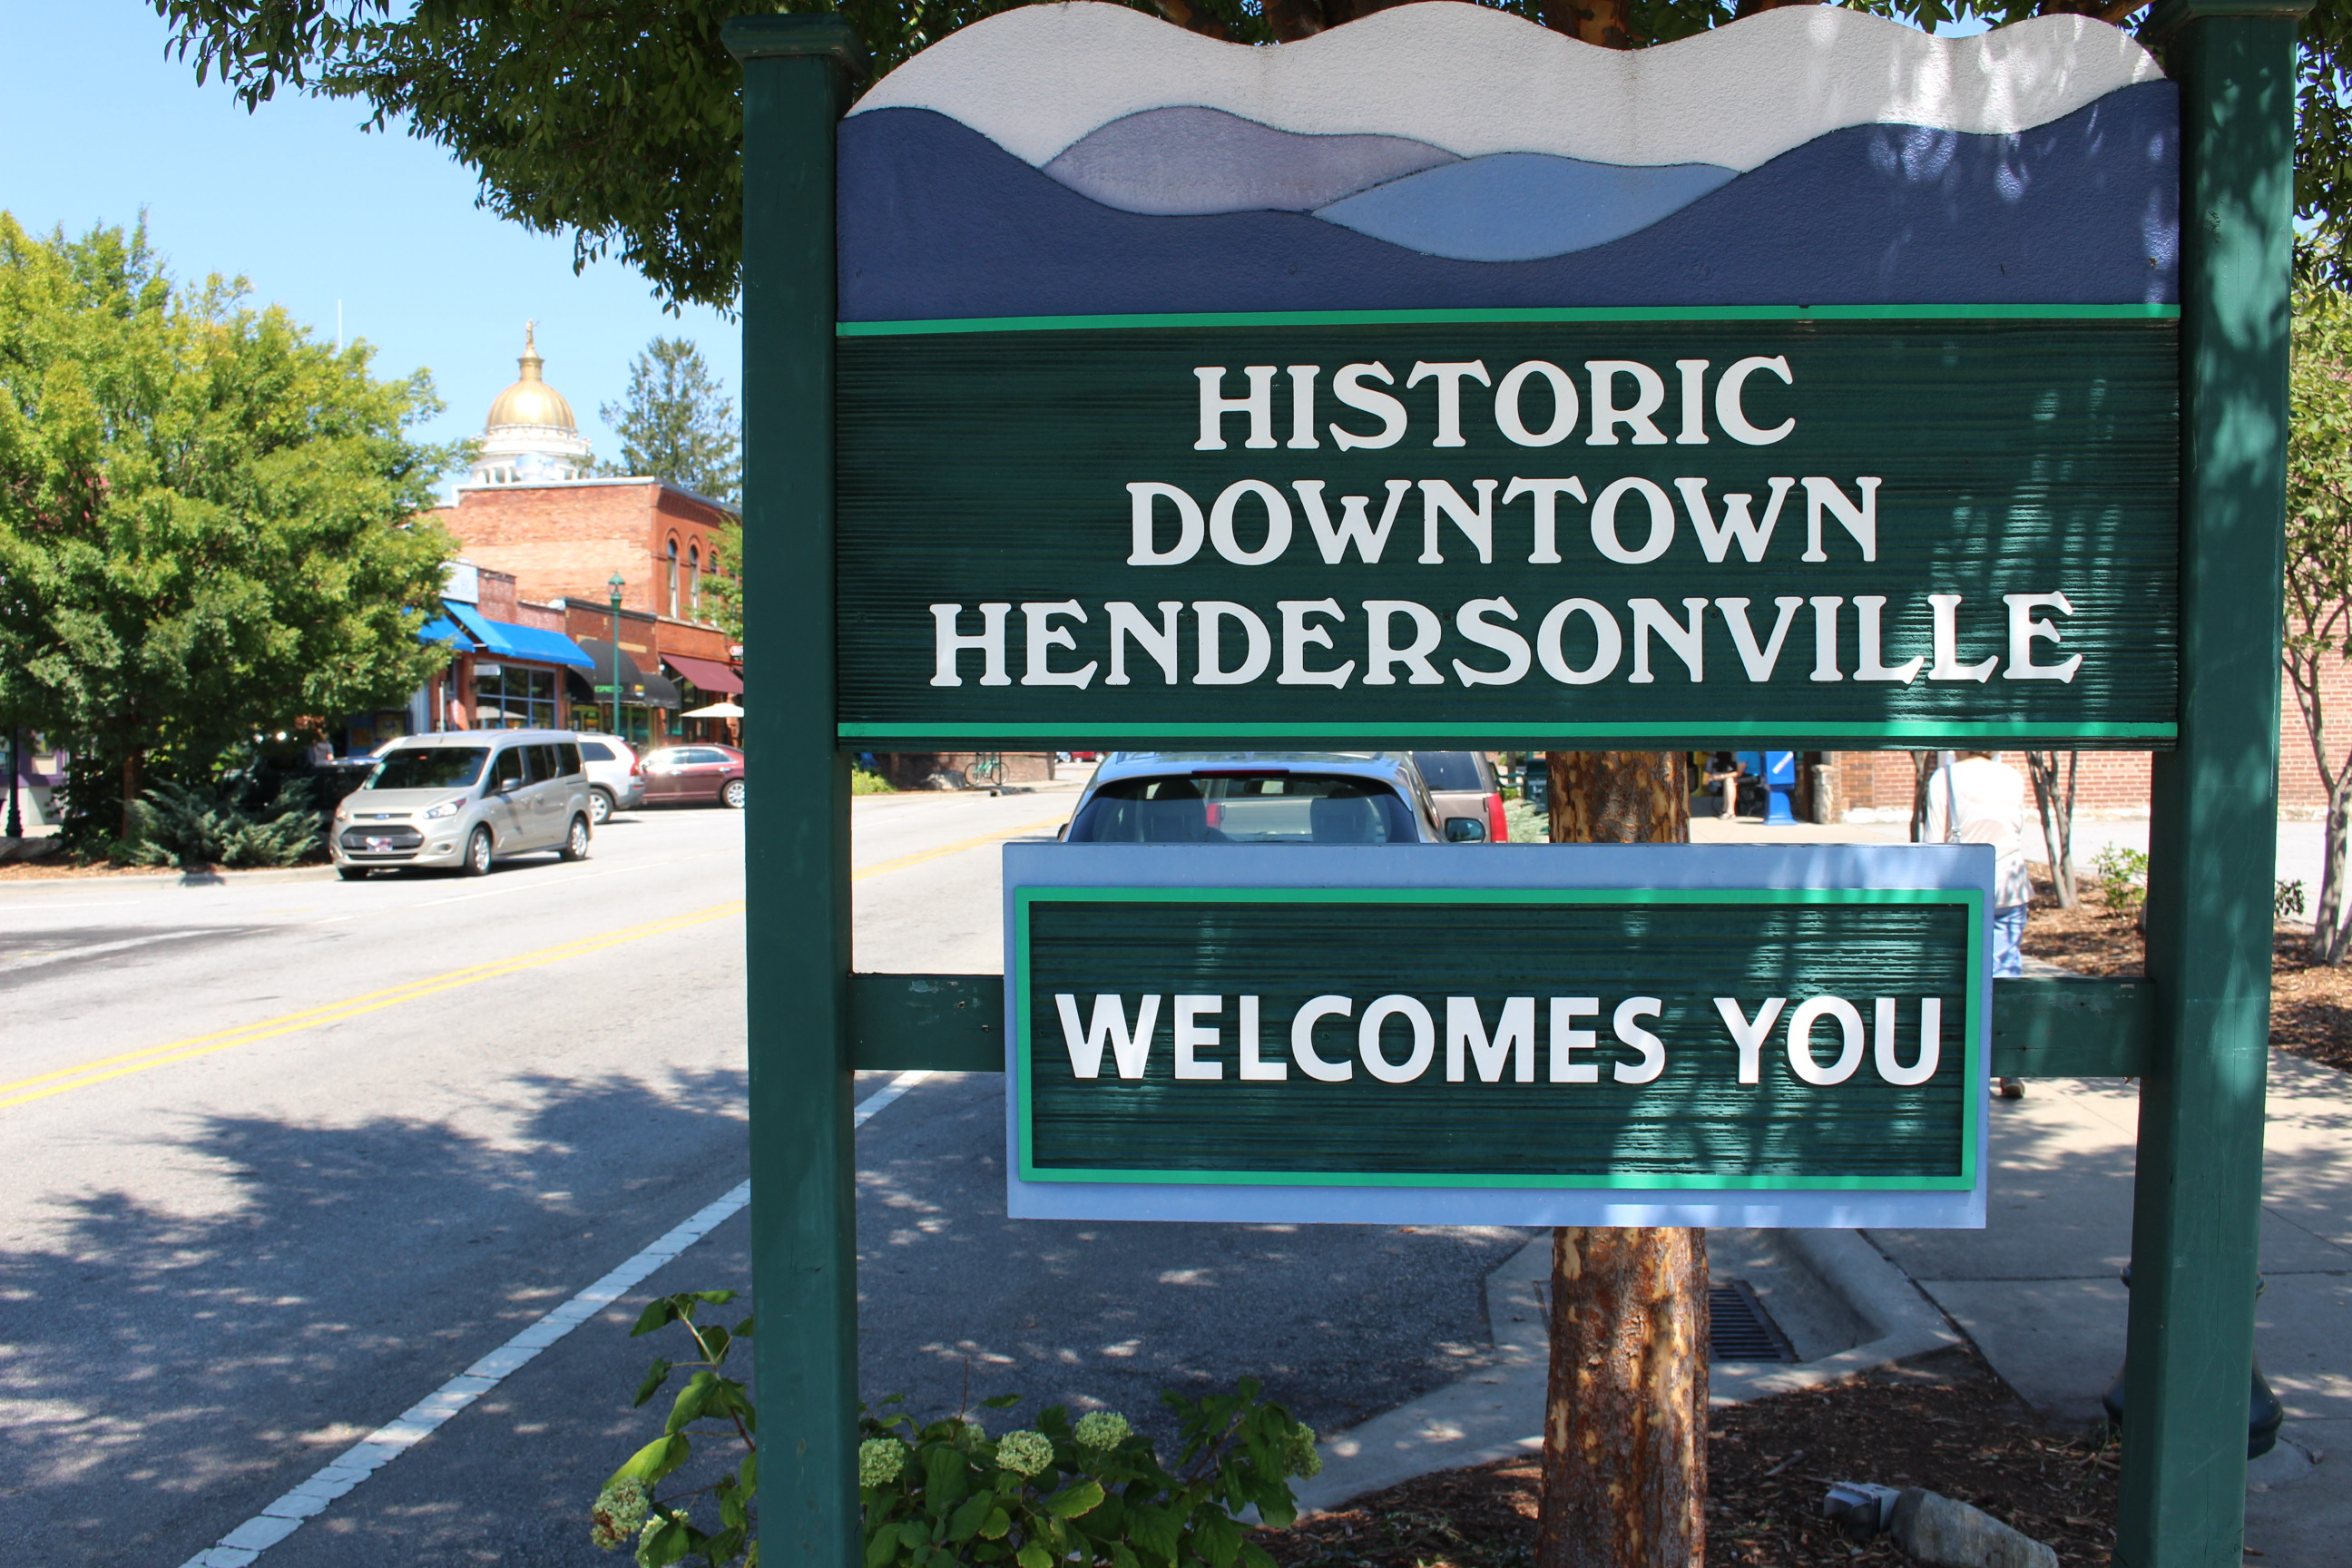 Second time around hendersonville